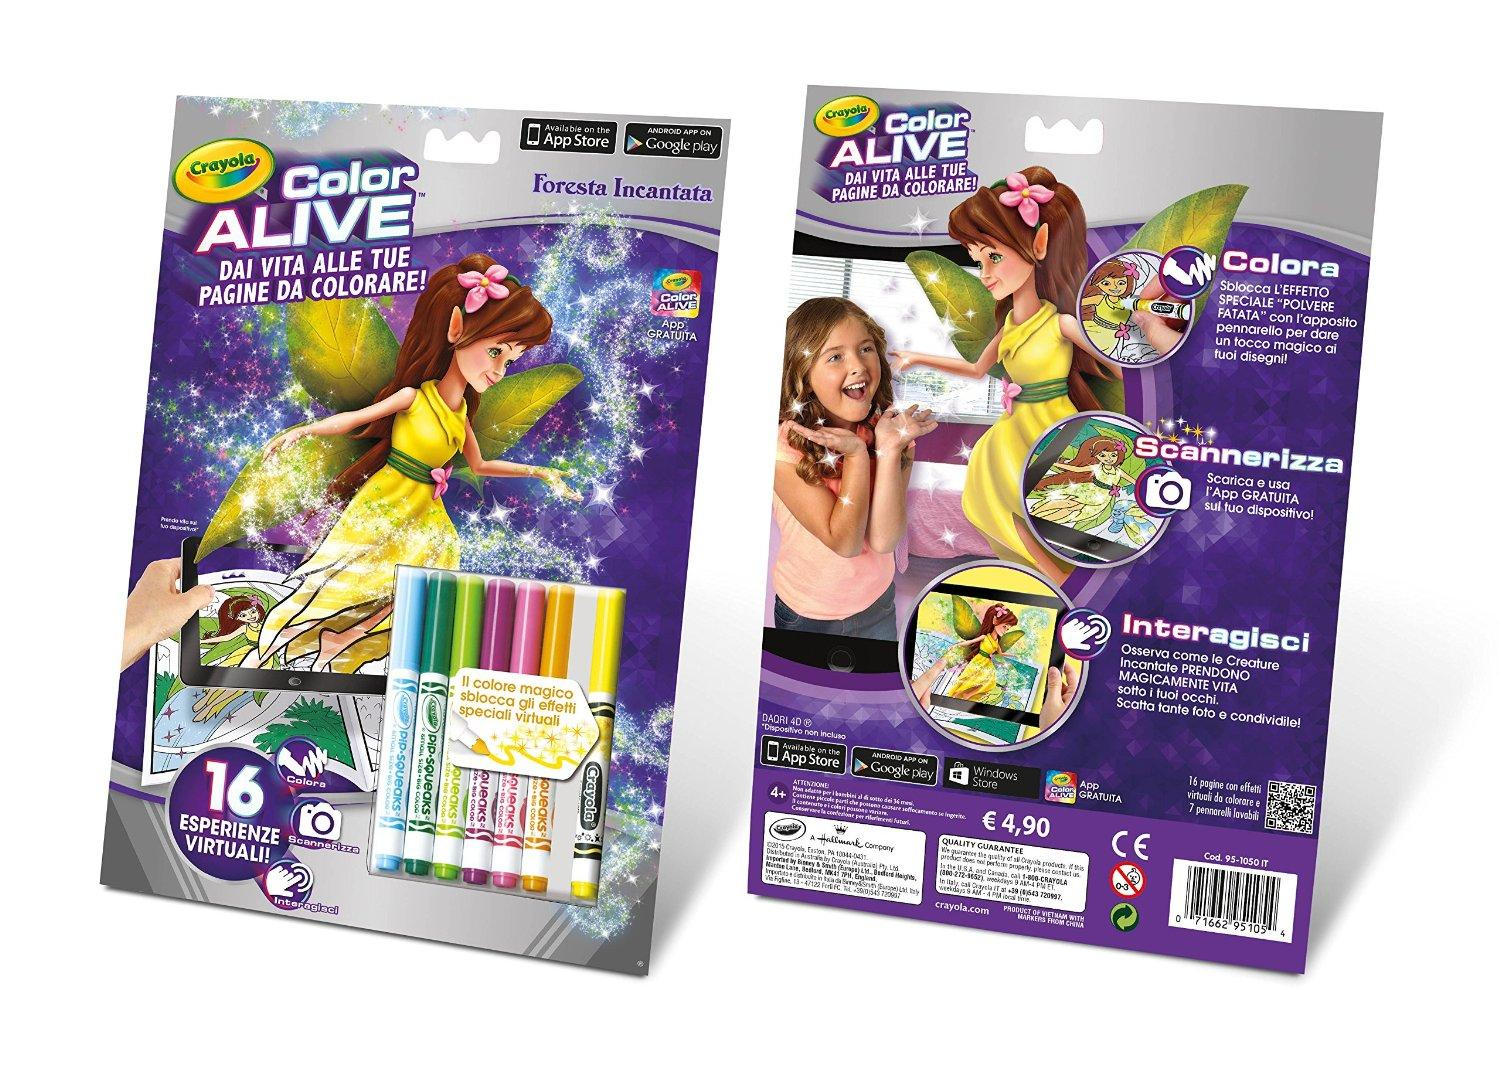 COLOR ALIVE FORESTA INCANTATA 95-1050 BINNEY e SMITH